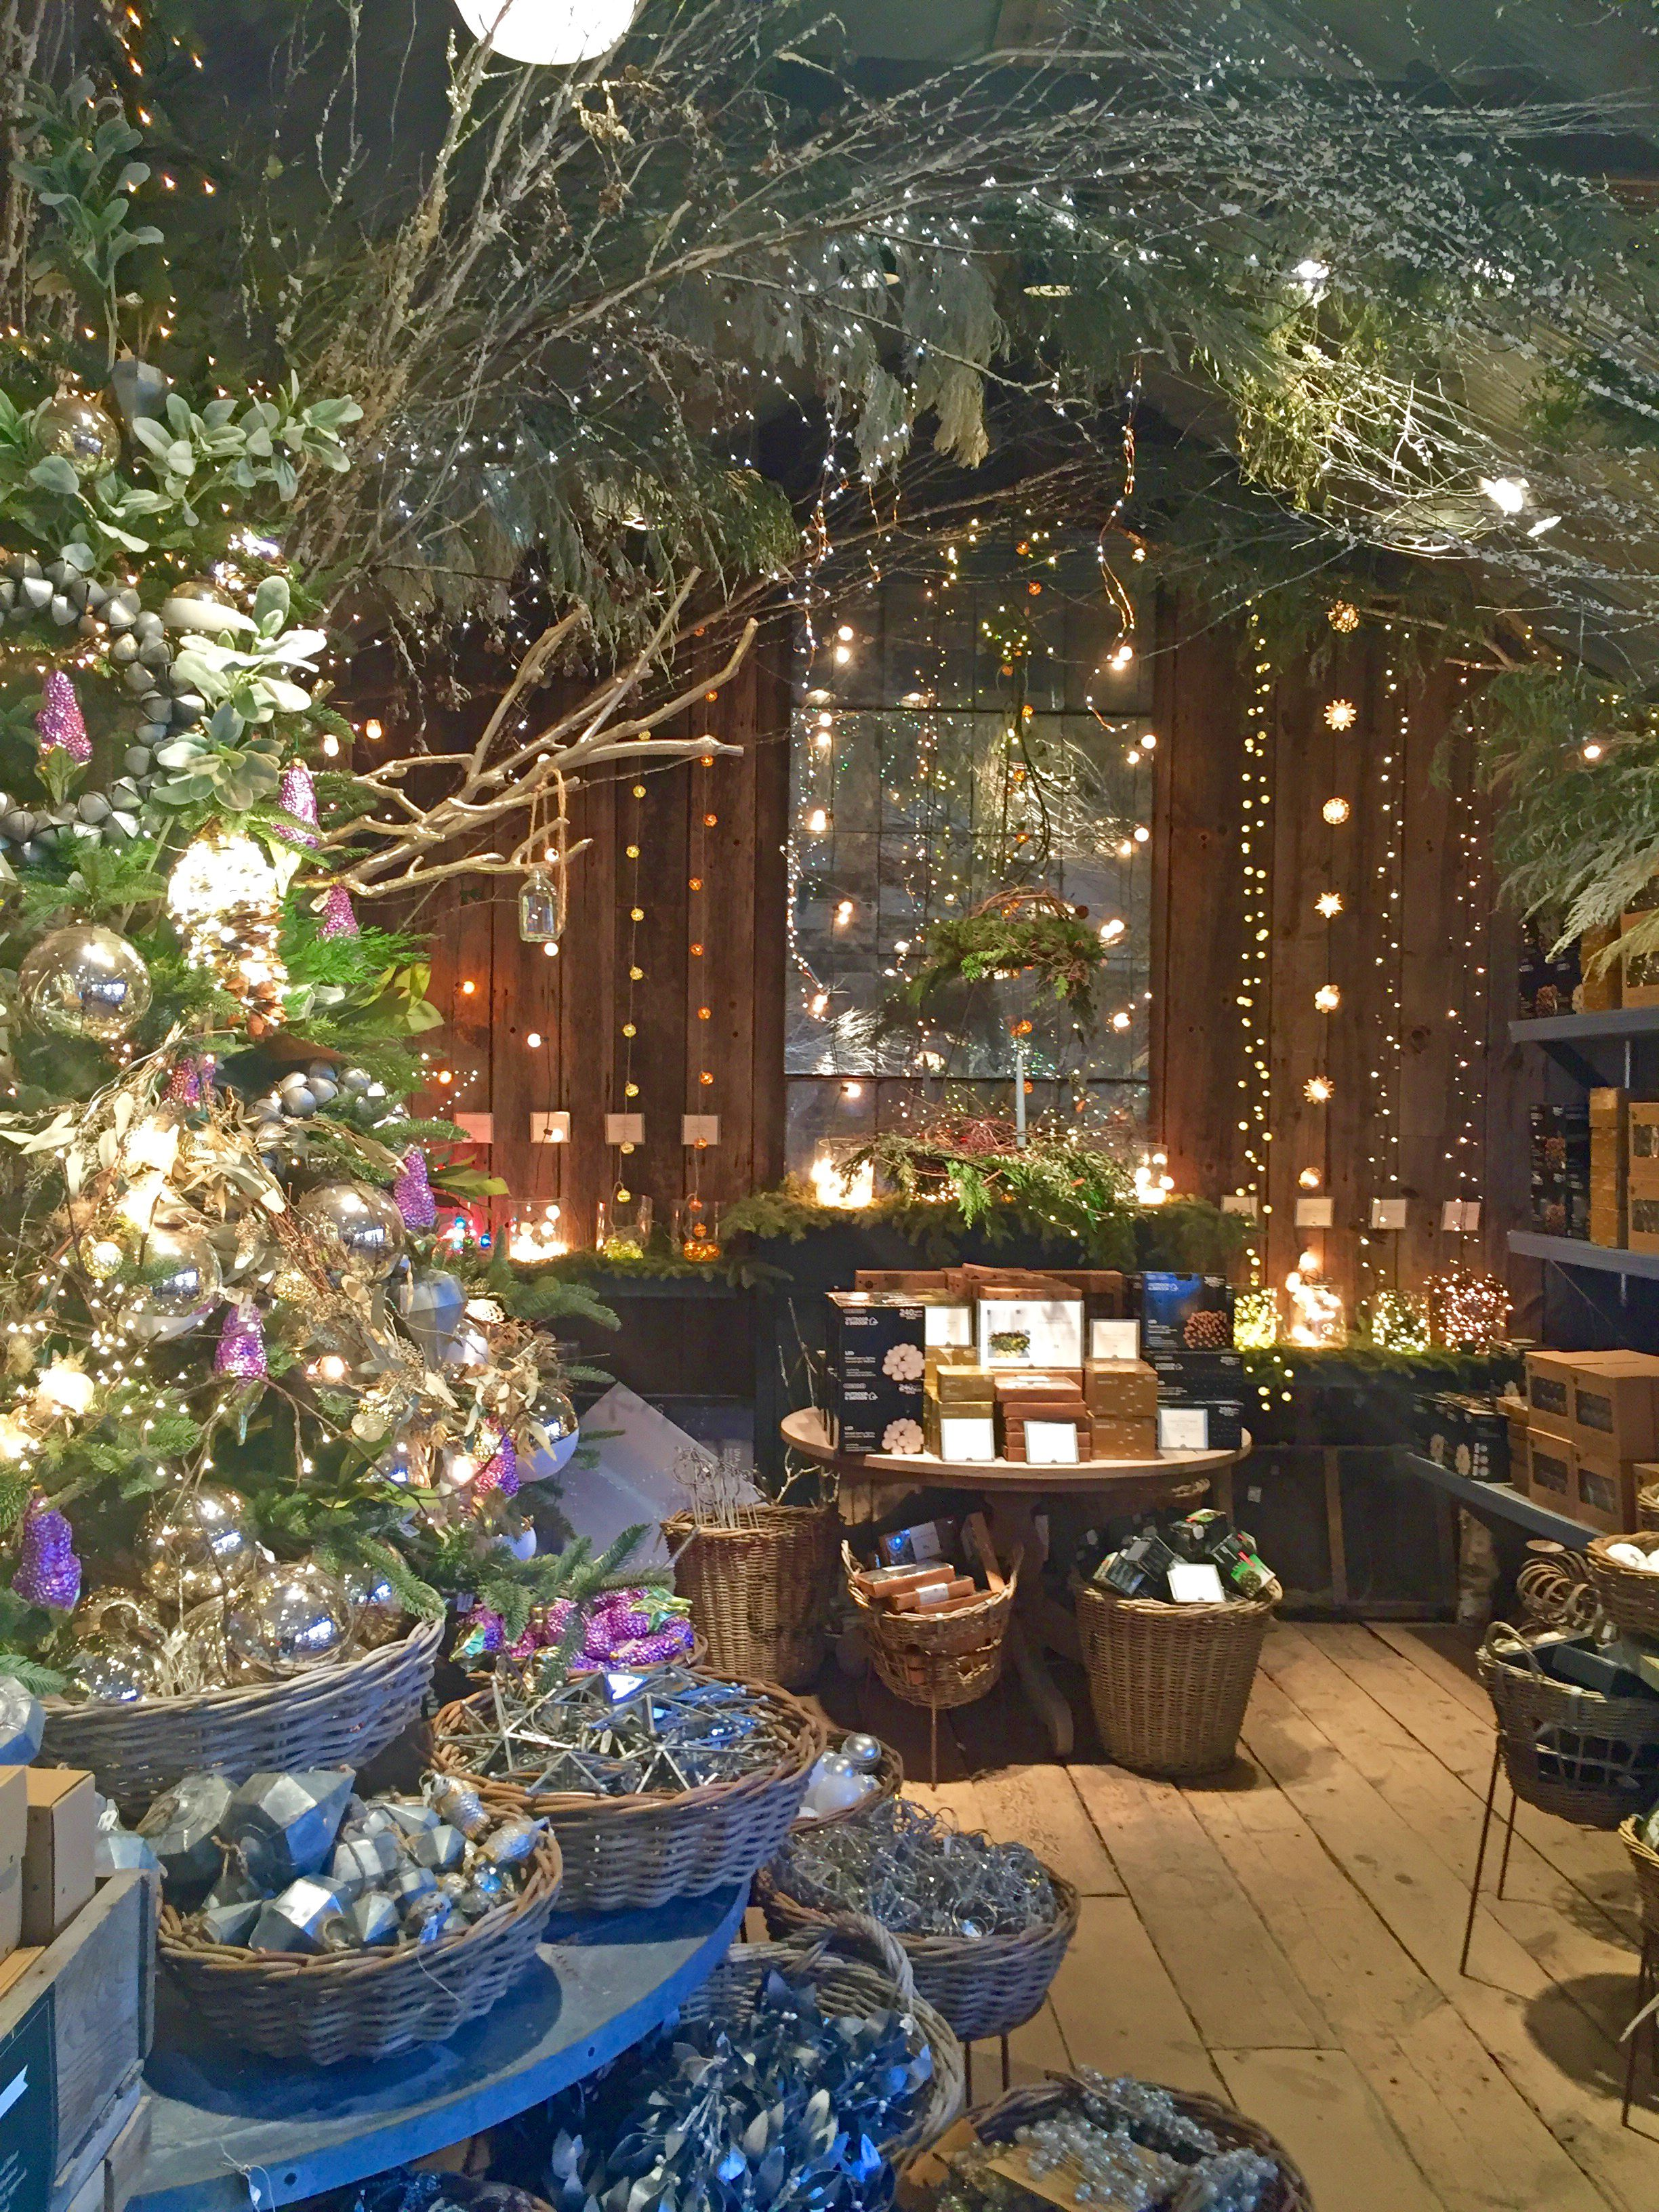 Holidays in the gift shop at Terrain, Glen Mills, PA